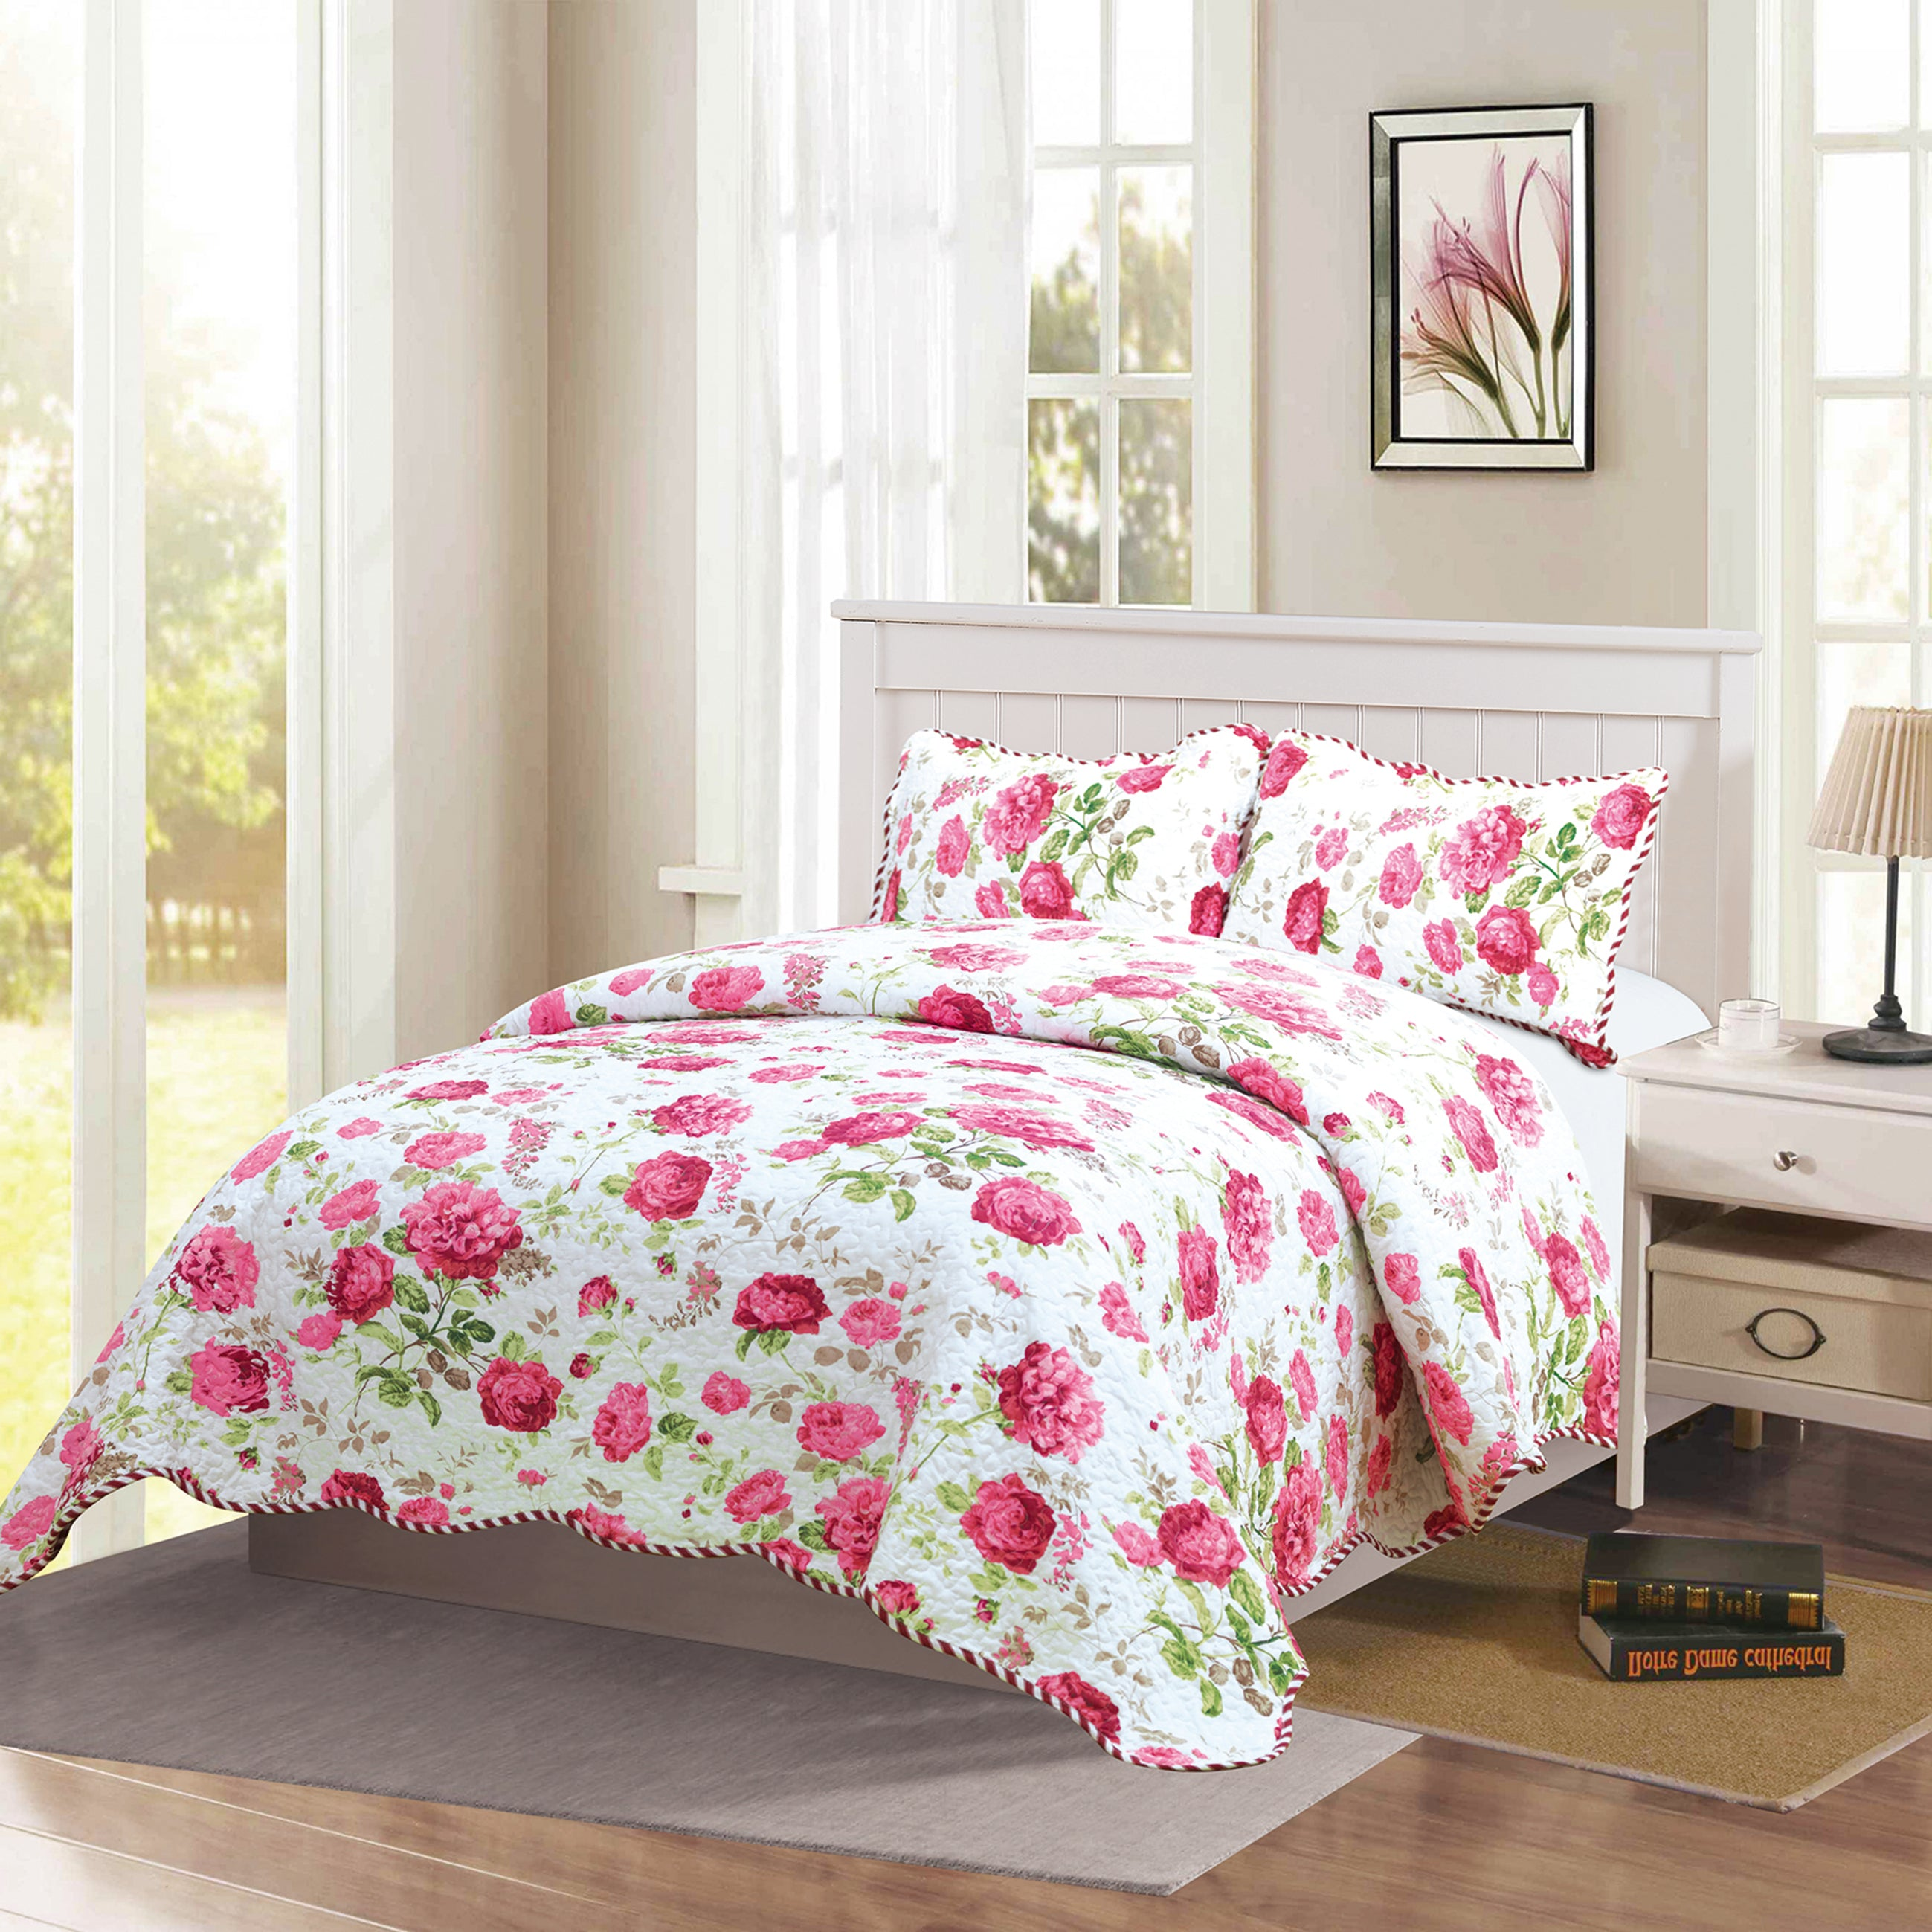 Monica - 3 Piece Quilt bedspread Set queen and king size - Pink - Glory Home Design